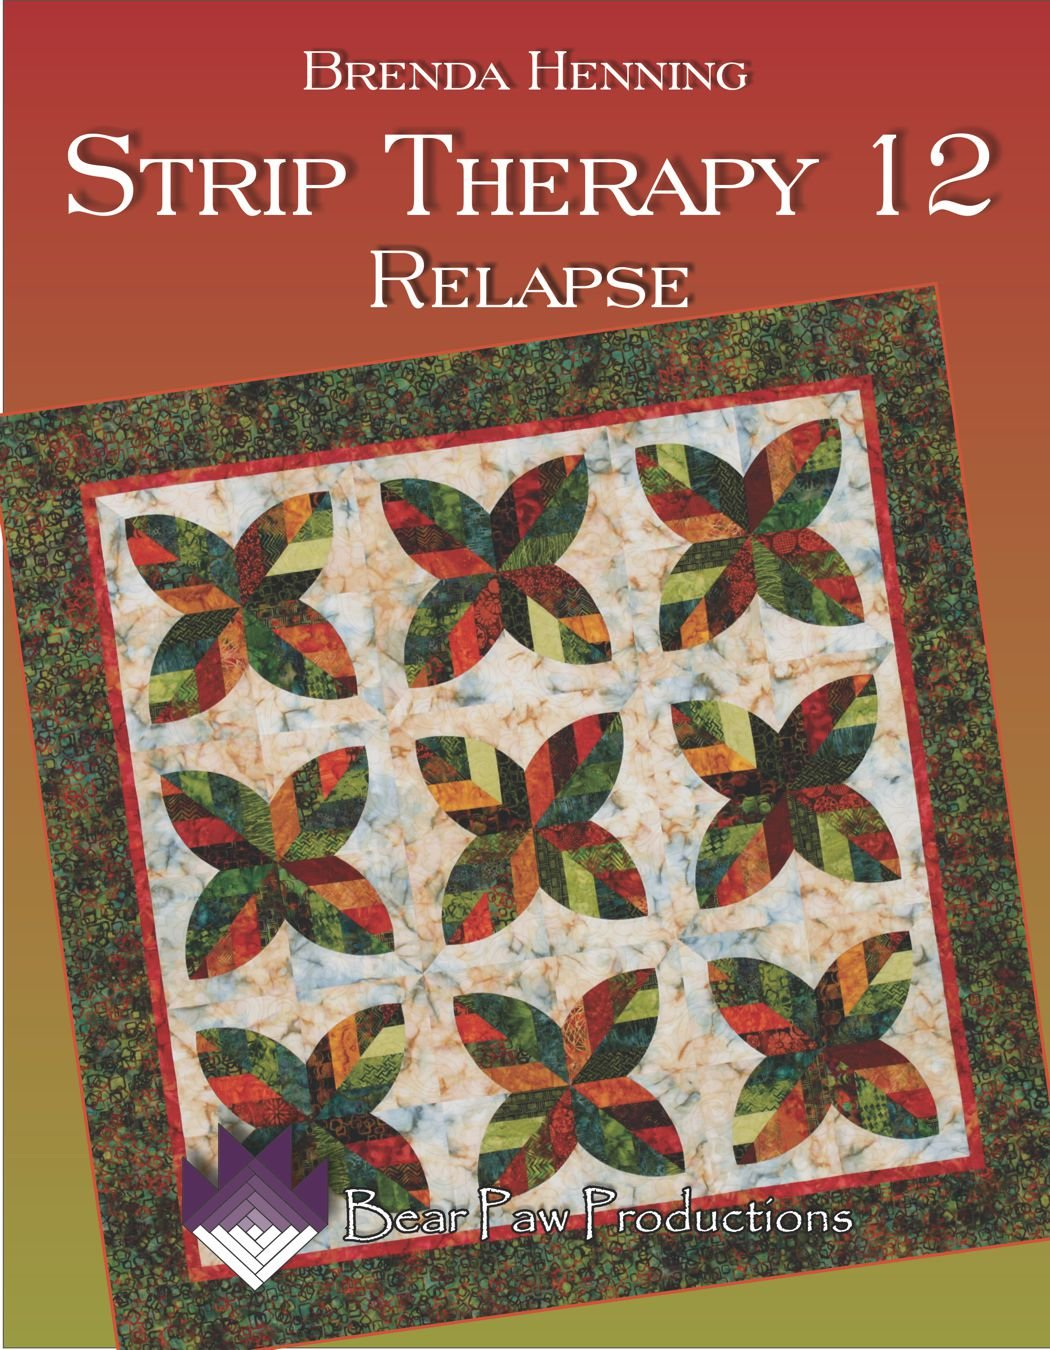 Strip Therapy 12 - Relapse